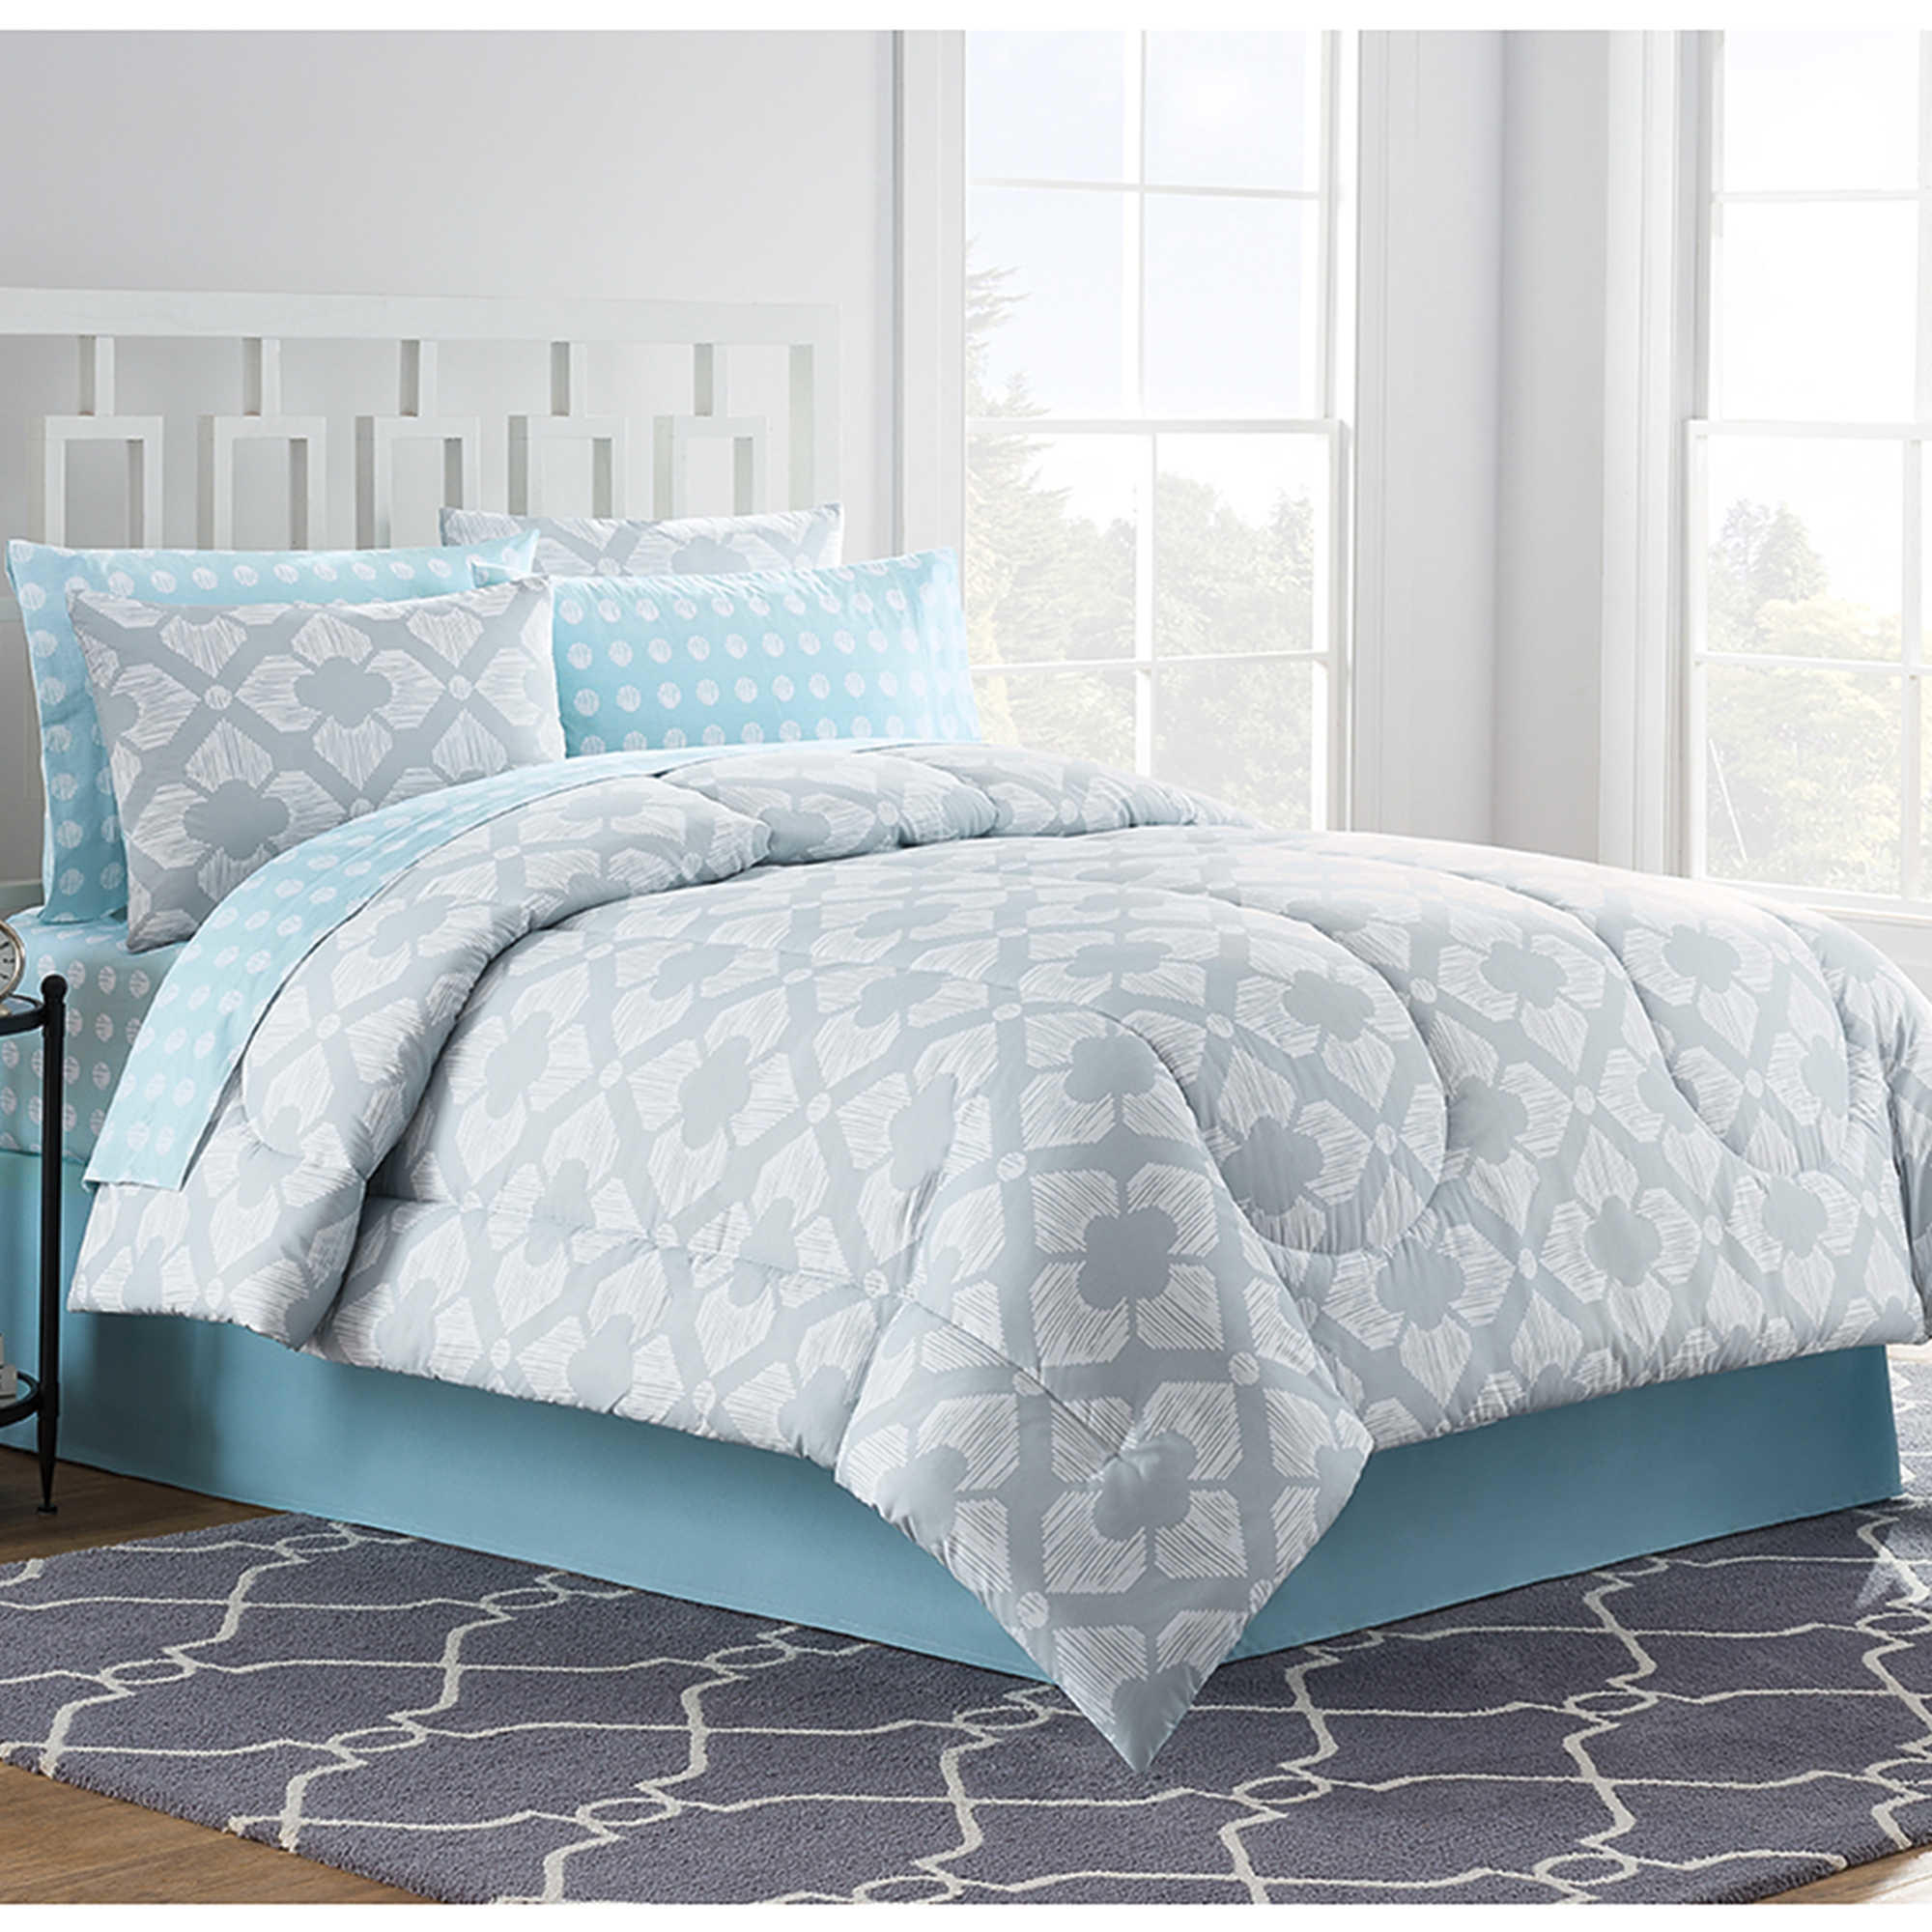 Gray Bedding At Bed Bath And Beyond : Chandra comforter set in light grey from bed bath beyond